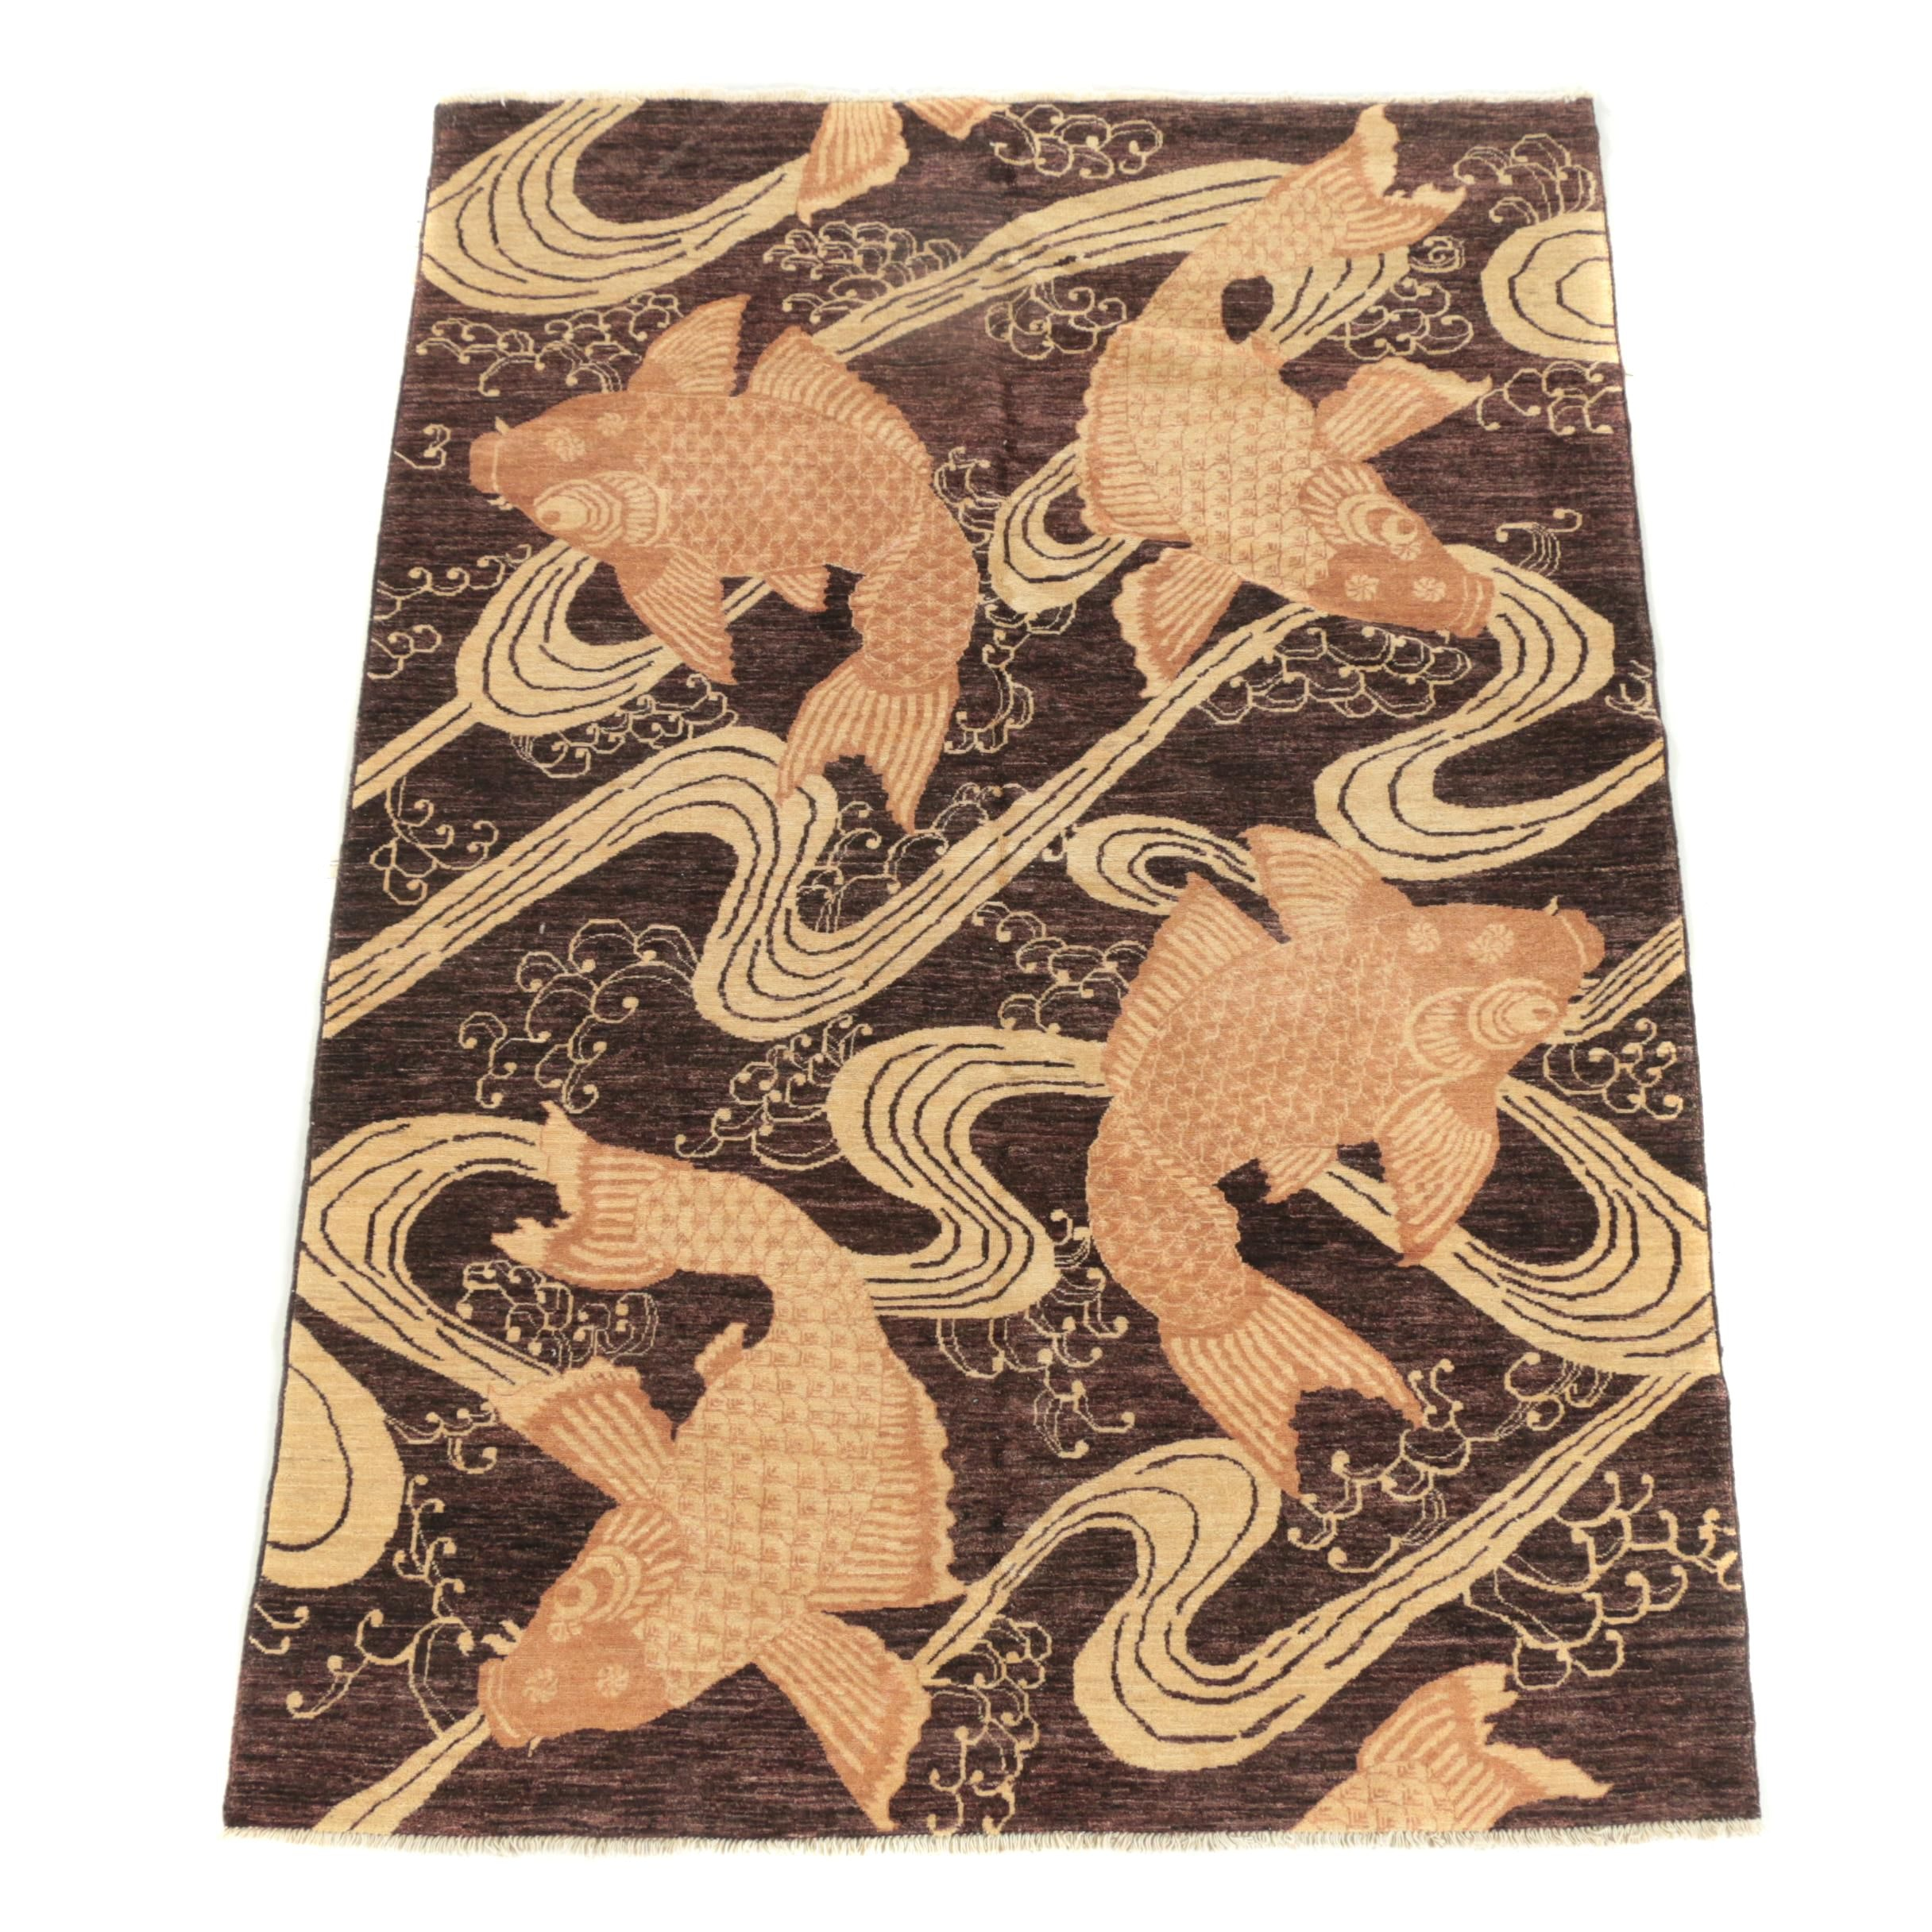 Hand-Knotted Pakistani Koi Pictorial Wool Area Rug